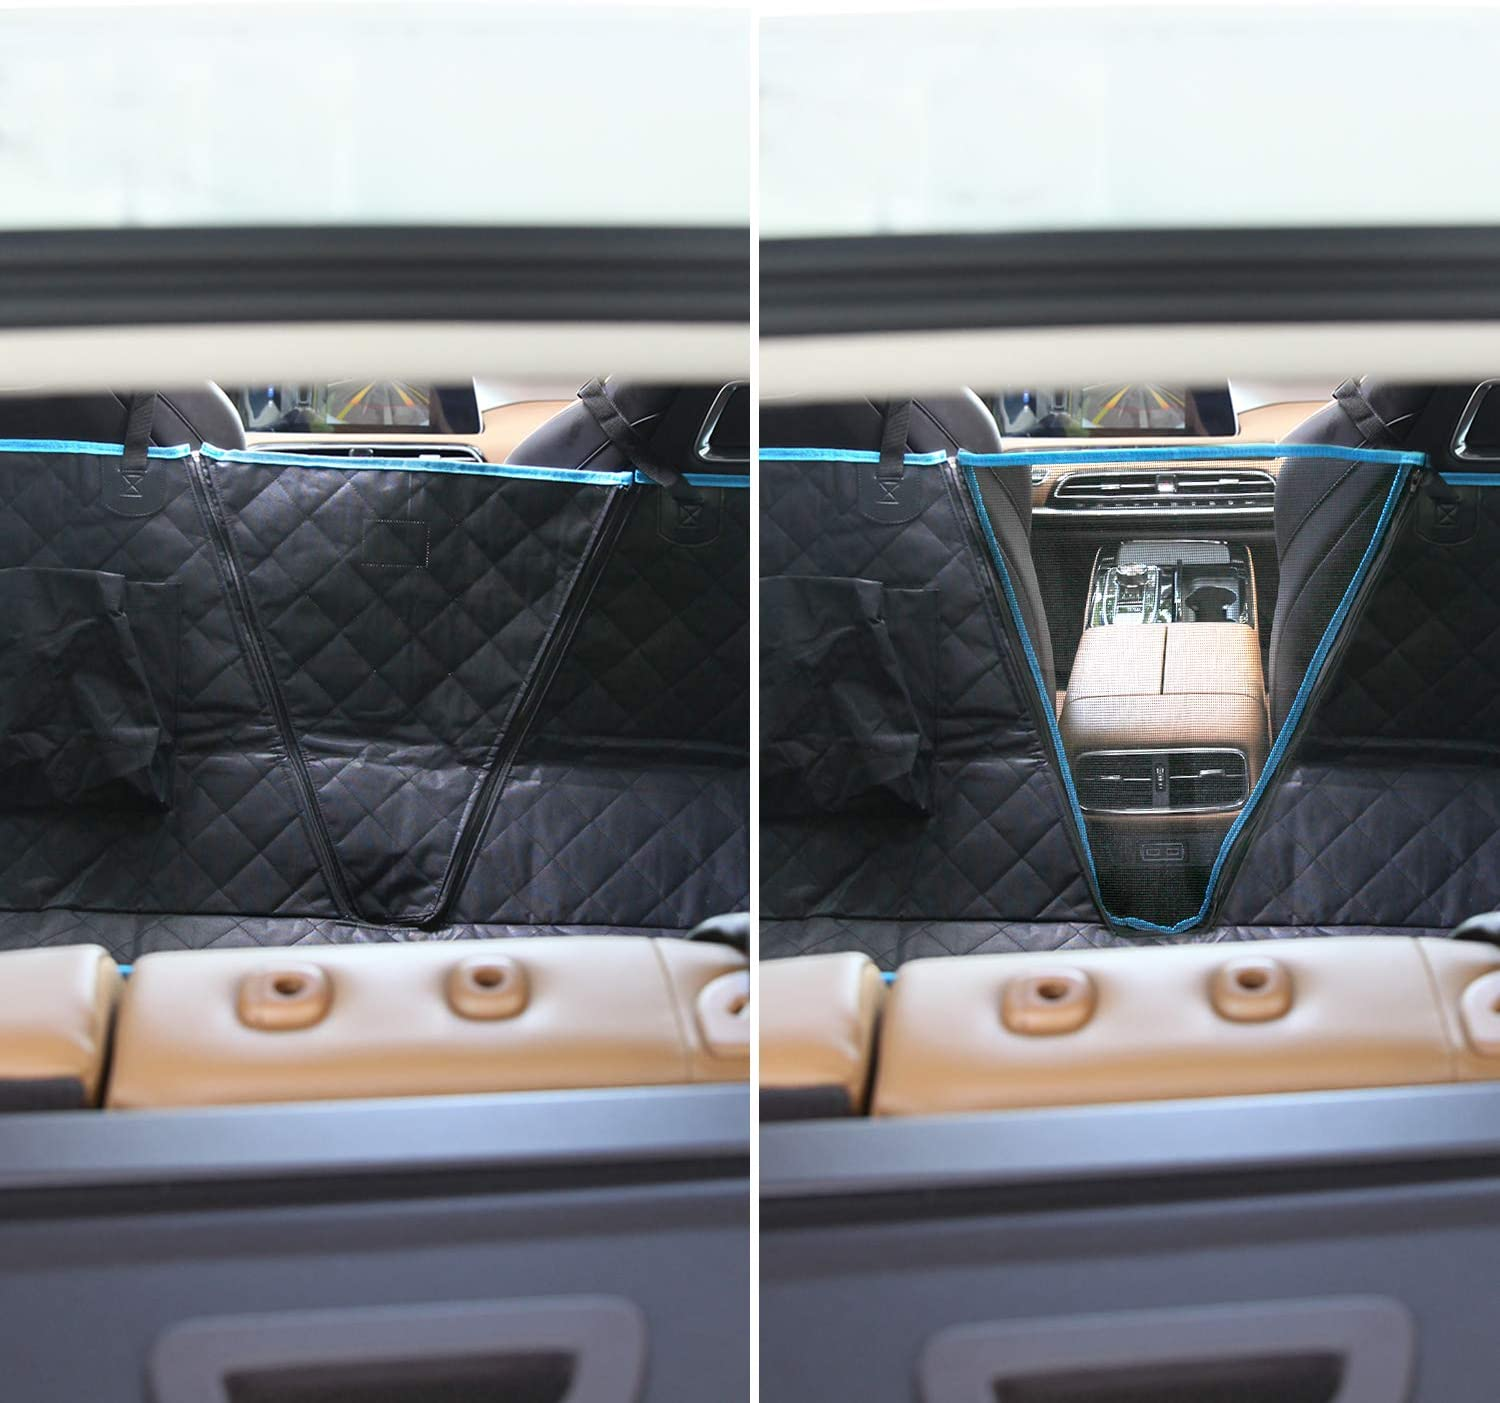 SUPSOO Car Seat Covers Dogs Back seat Covers Black 100/% Waterproof and Scratchproof /& Nonslip Backing /& Hammock Convertible and Side Flaps for Cars//Trucks//SUV